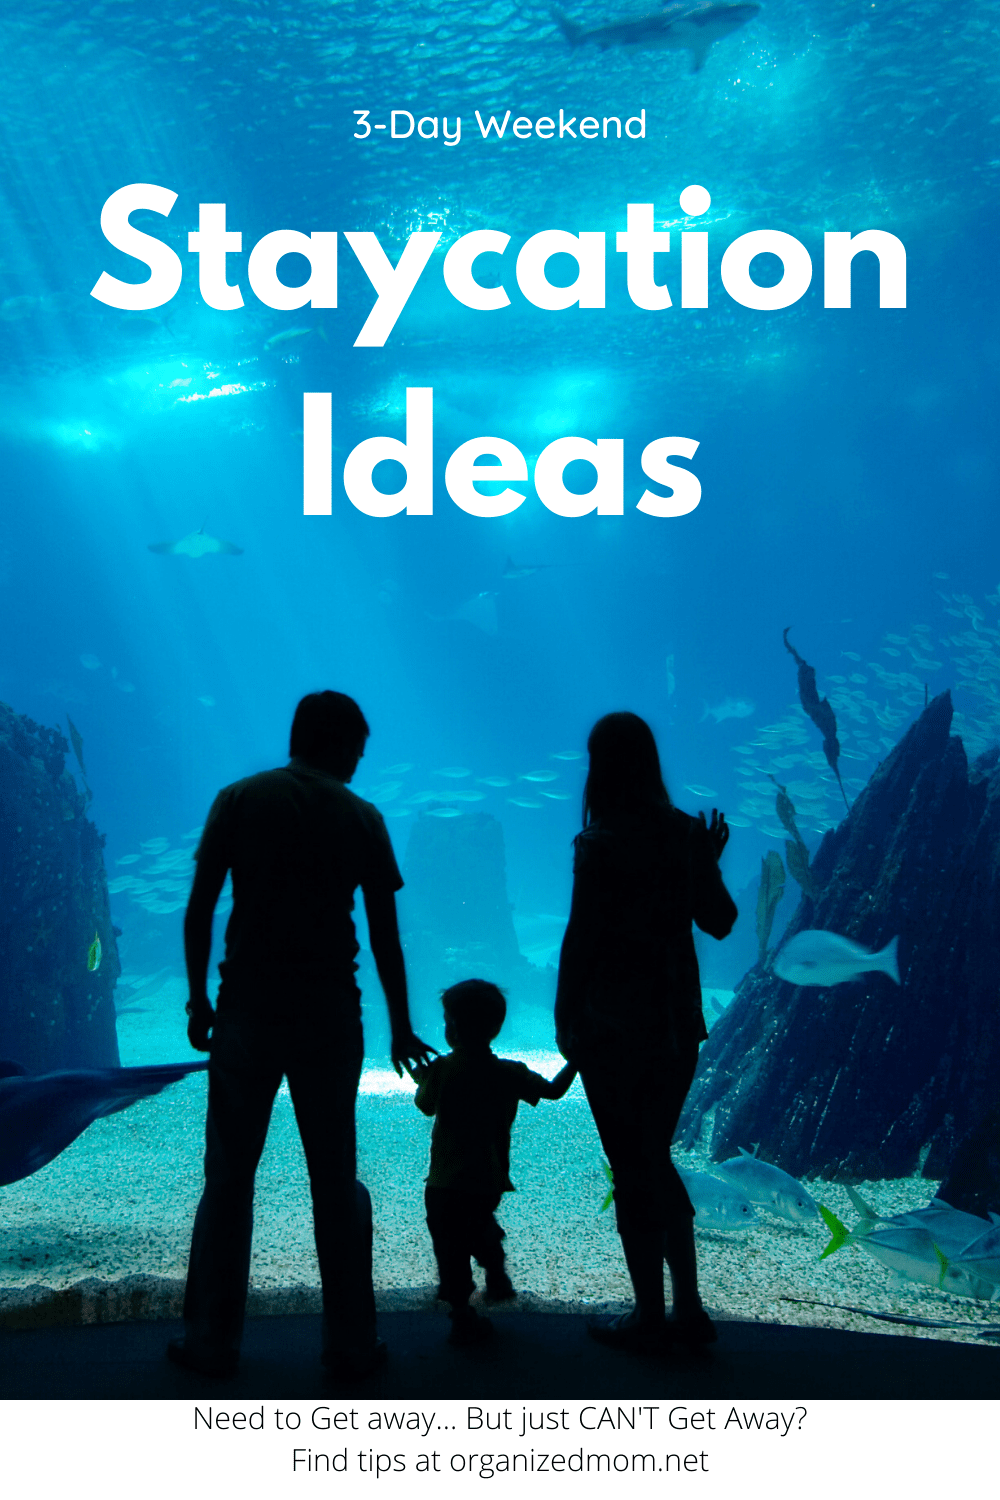 Staycation Ideas for 3-day Weekends